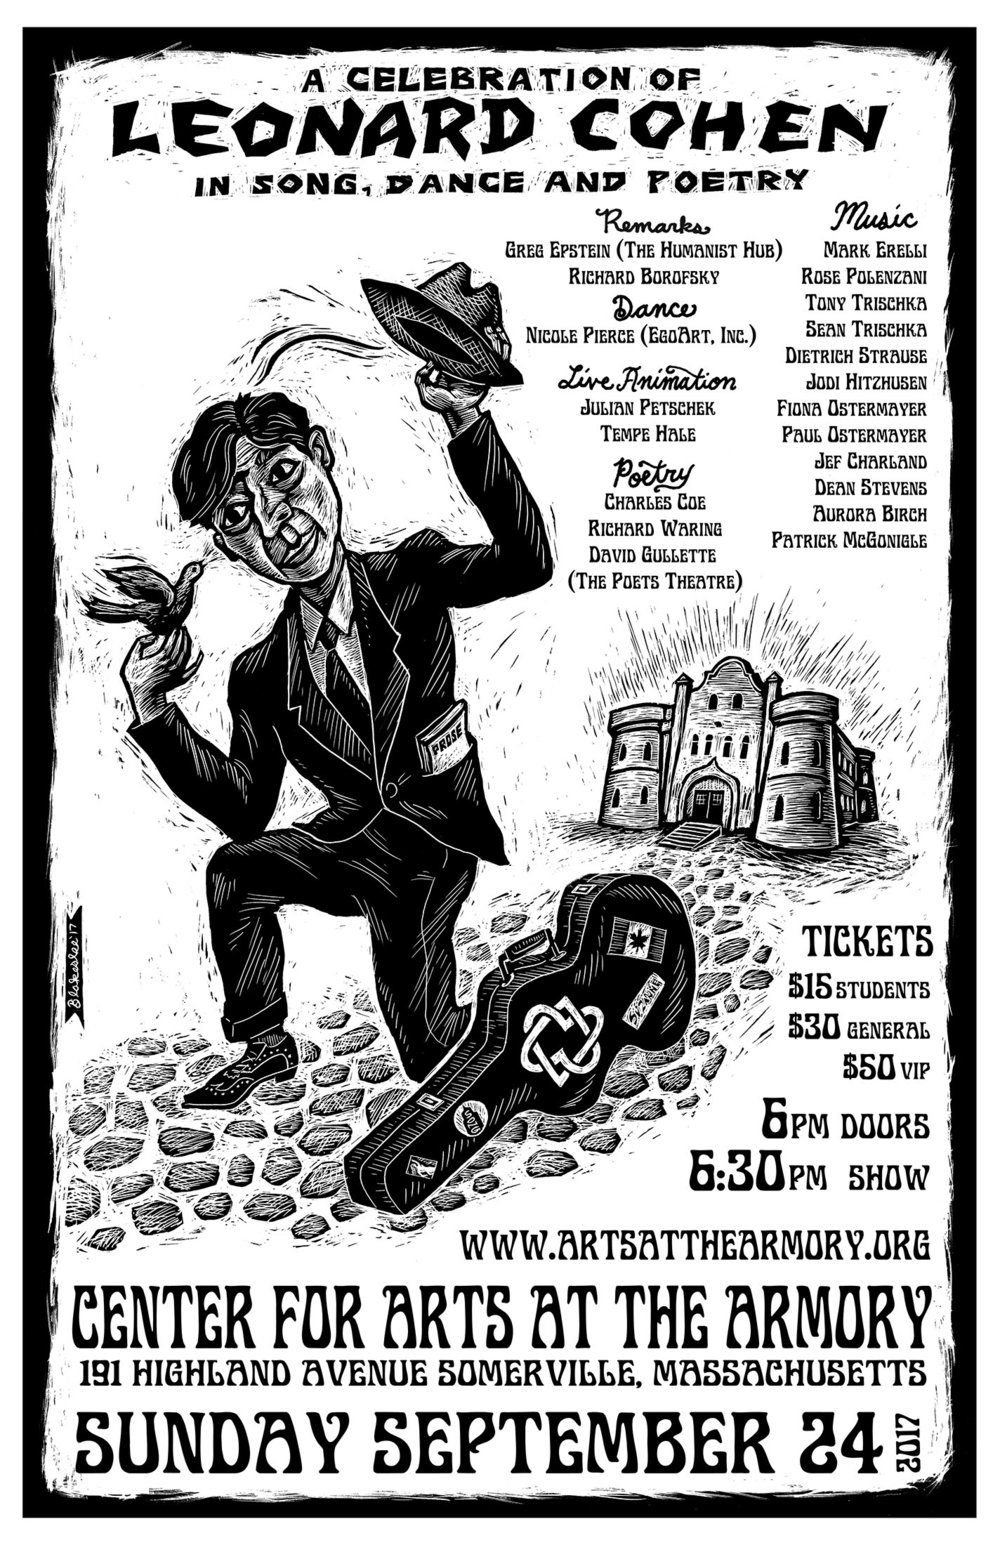 A Celebration of Leonard Cohen in Music, Dance, and Poetry - Cornerscape produced a celebration of Leonard Cohen's work, performed on September 24, 2017 to a sold-out crowd of 300 at the Somerville Armory. We oversaw: event design, production, marketing, permitting, and all logistics. Beautiful poster by Dan Blakeslee. Slightly blurry iPhone photos below by me.